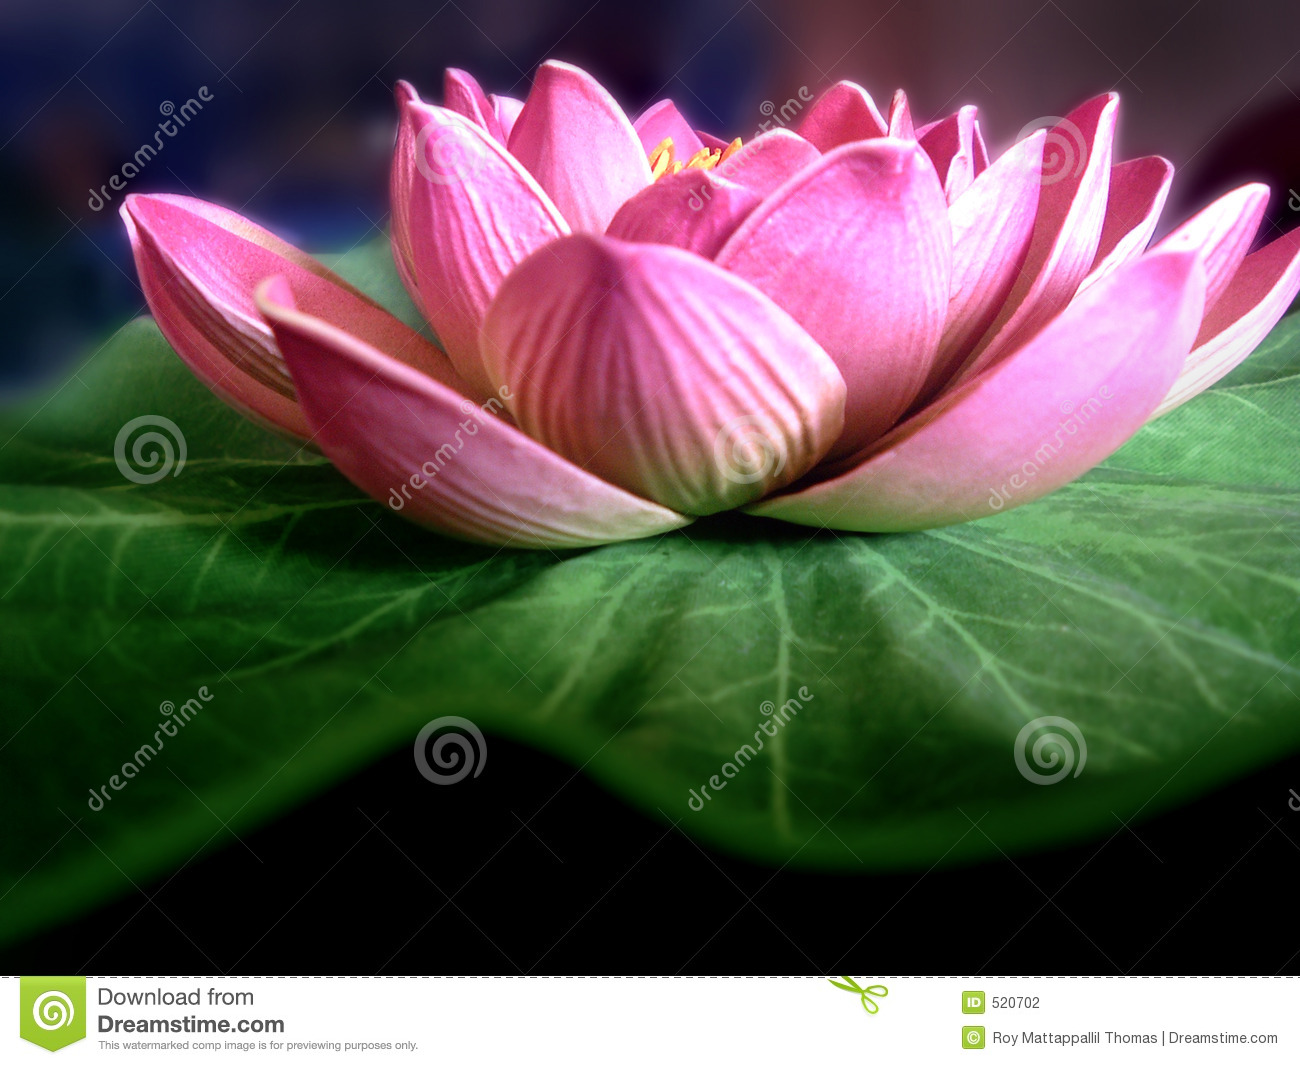 Stock Photography Lotus Flower Image520702 on bamboo orchid